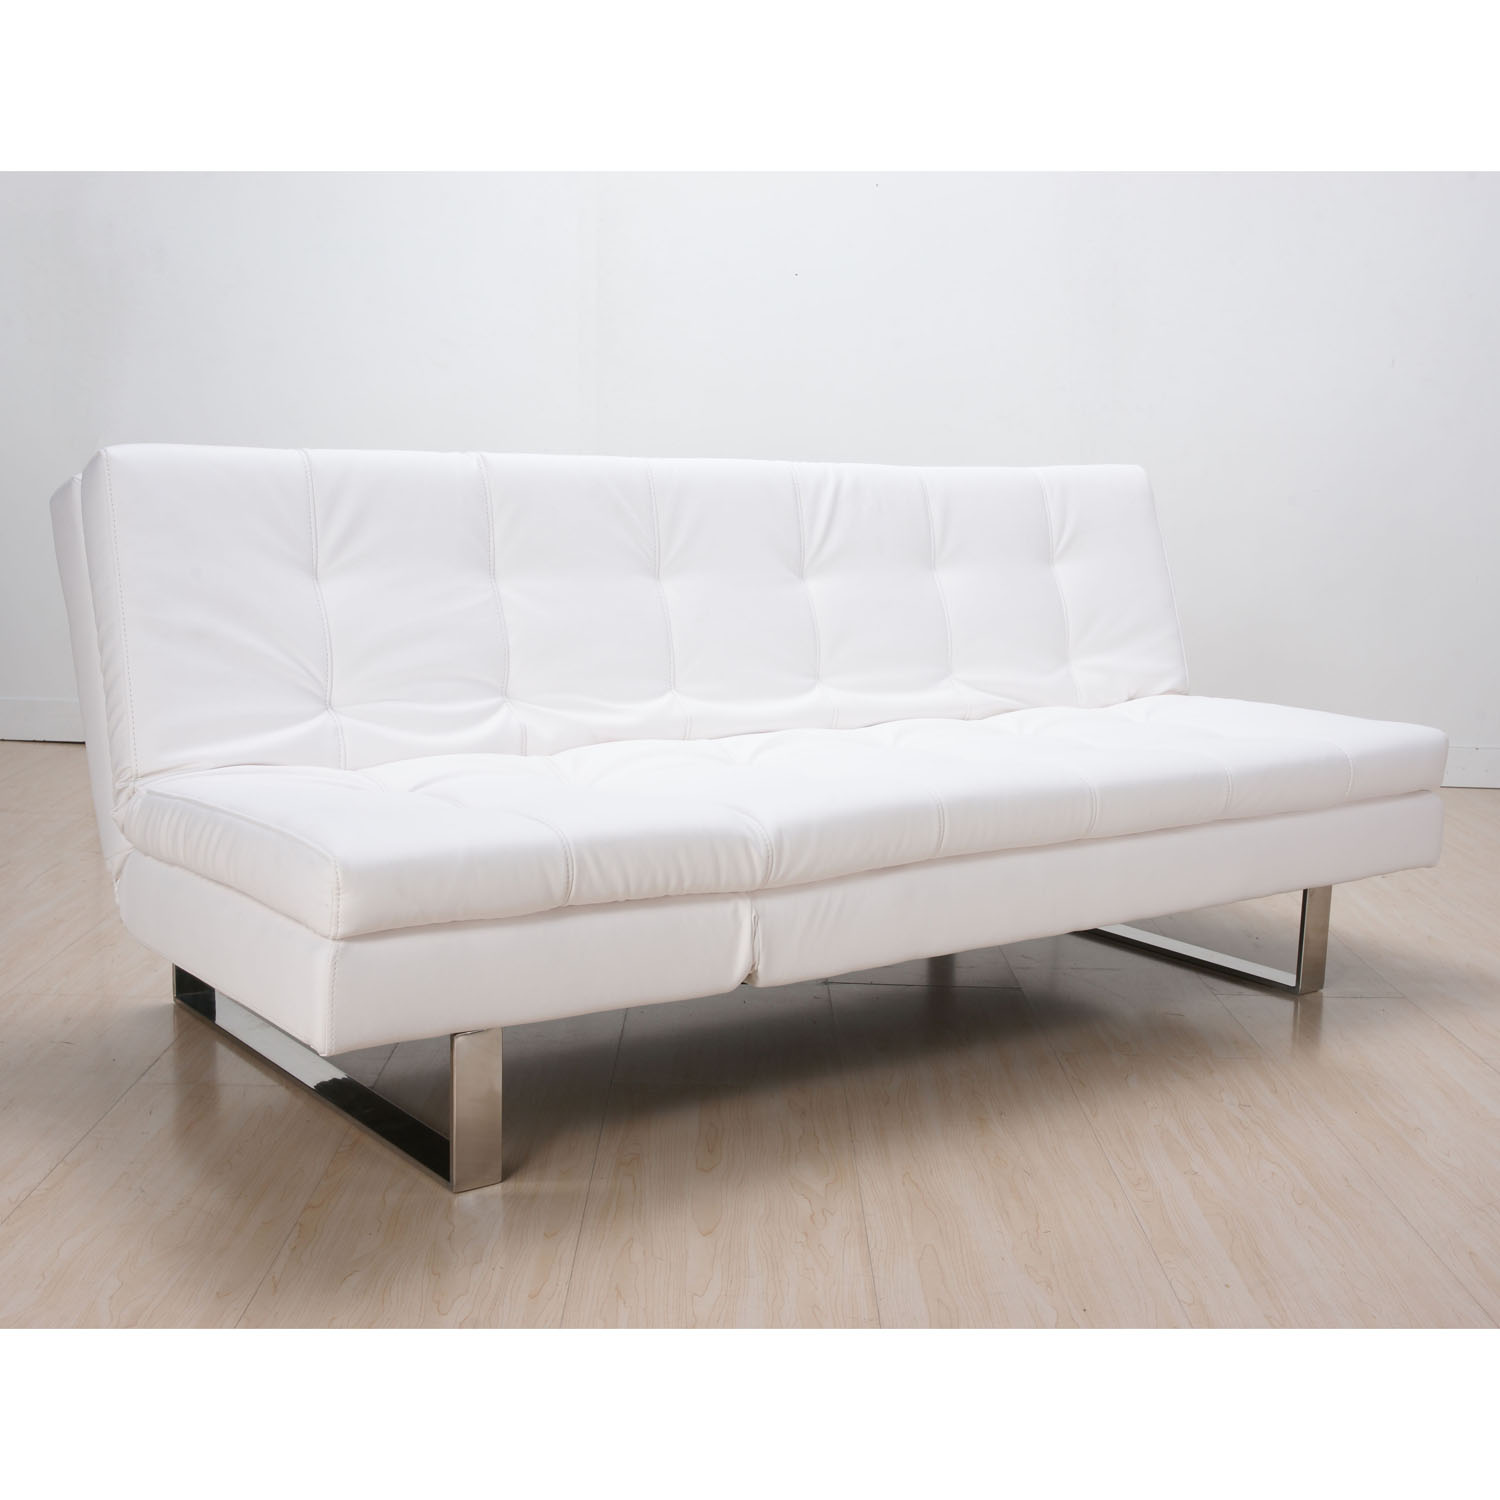 white sofa beds white sofa bed easy sofa bed white on sofa beds white jtywhty KCISCHE